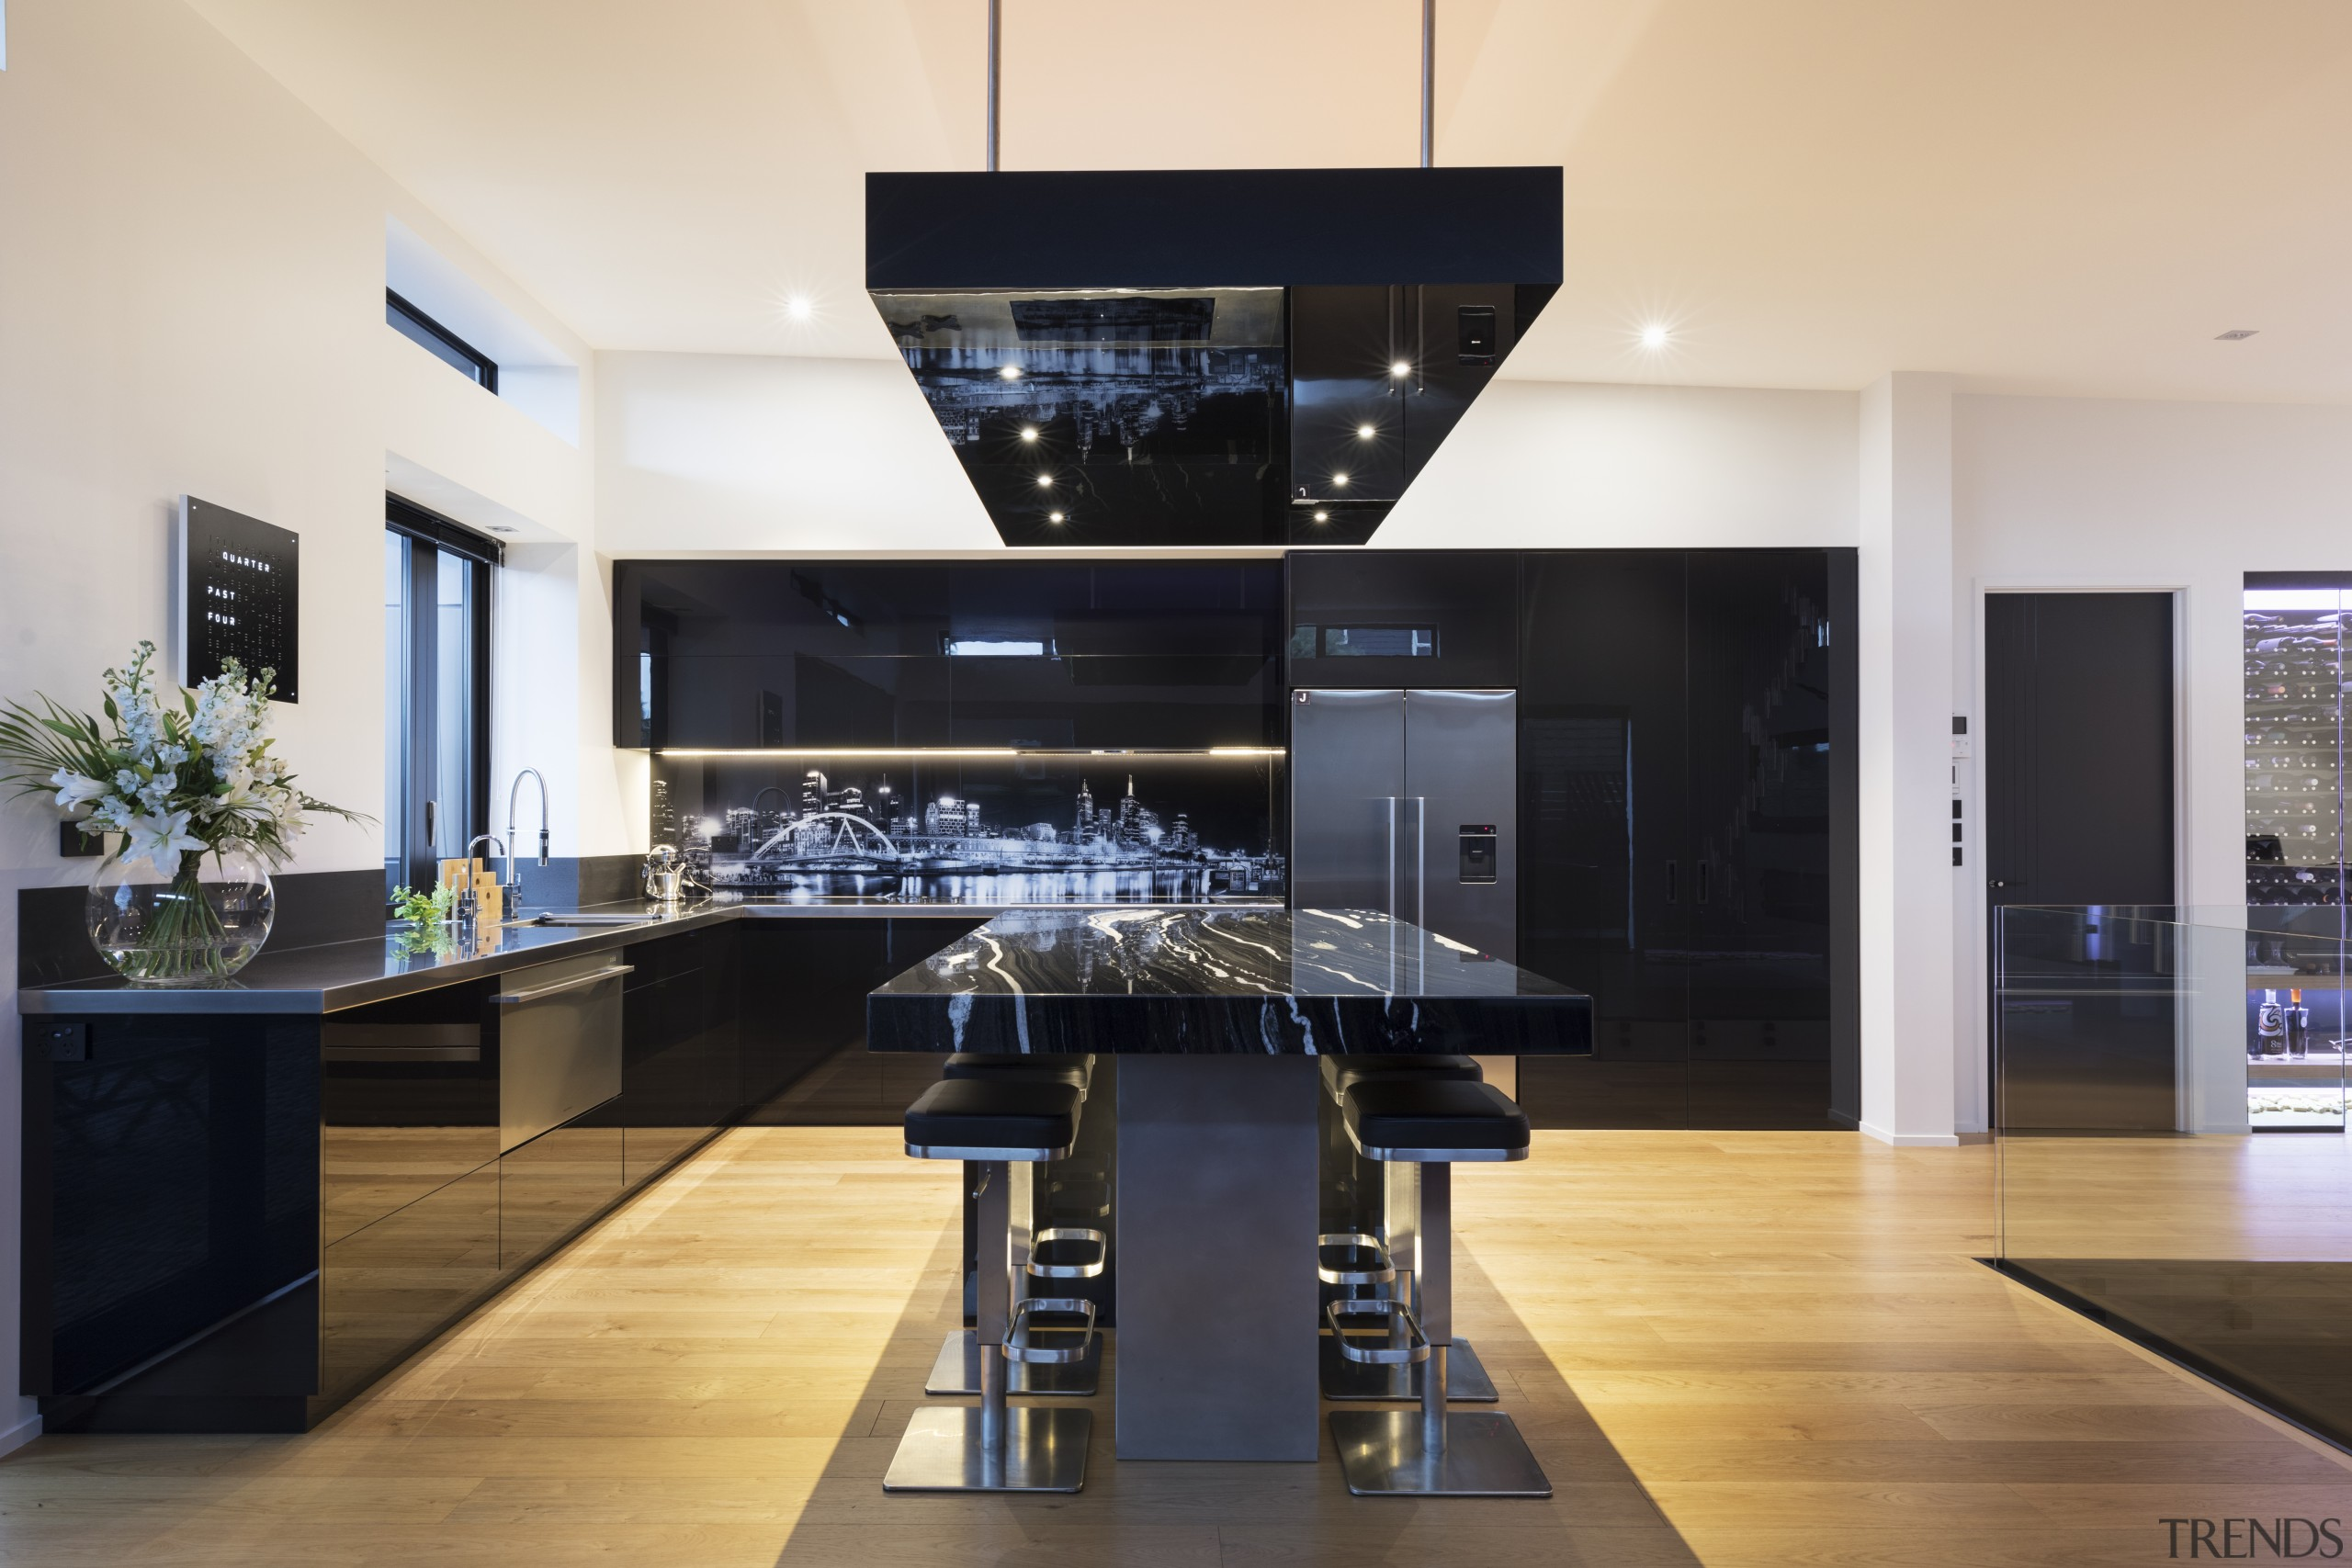 The kitchen is an L-shape, with a seating countertop, interior design, kitchen, black, white